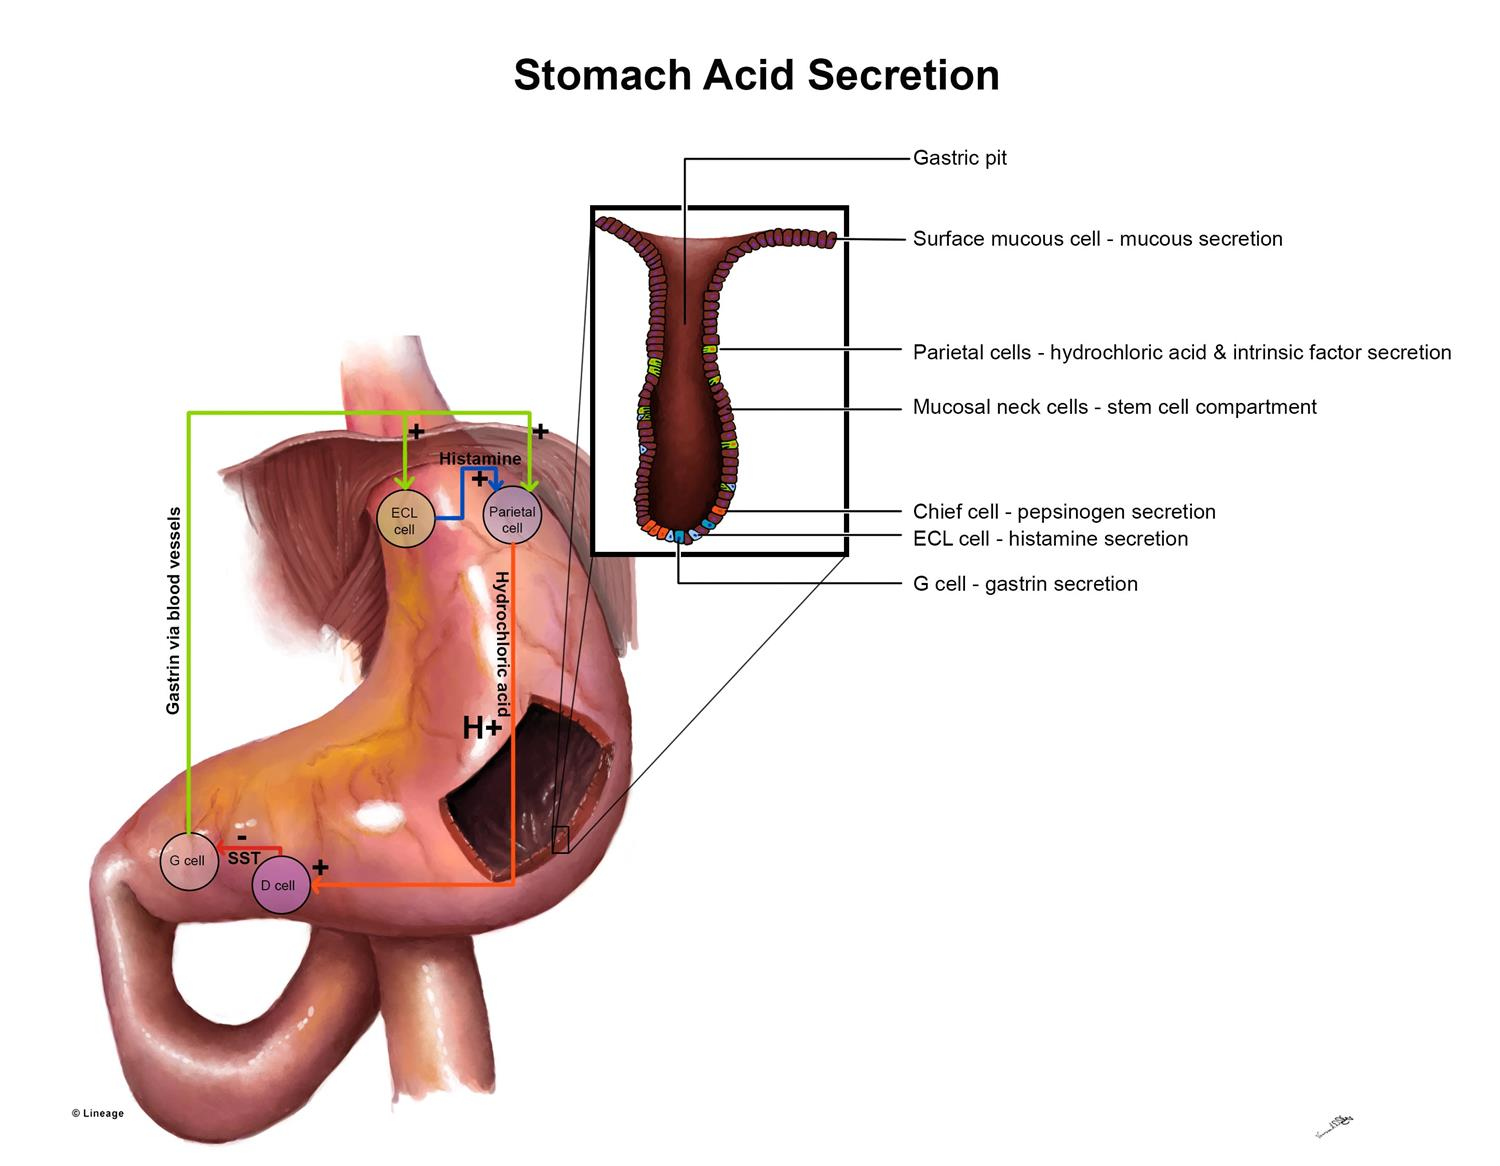 https://upload.medbullets.com/topic/106036/images/stomach_secretion_2.jpg